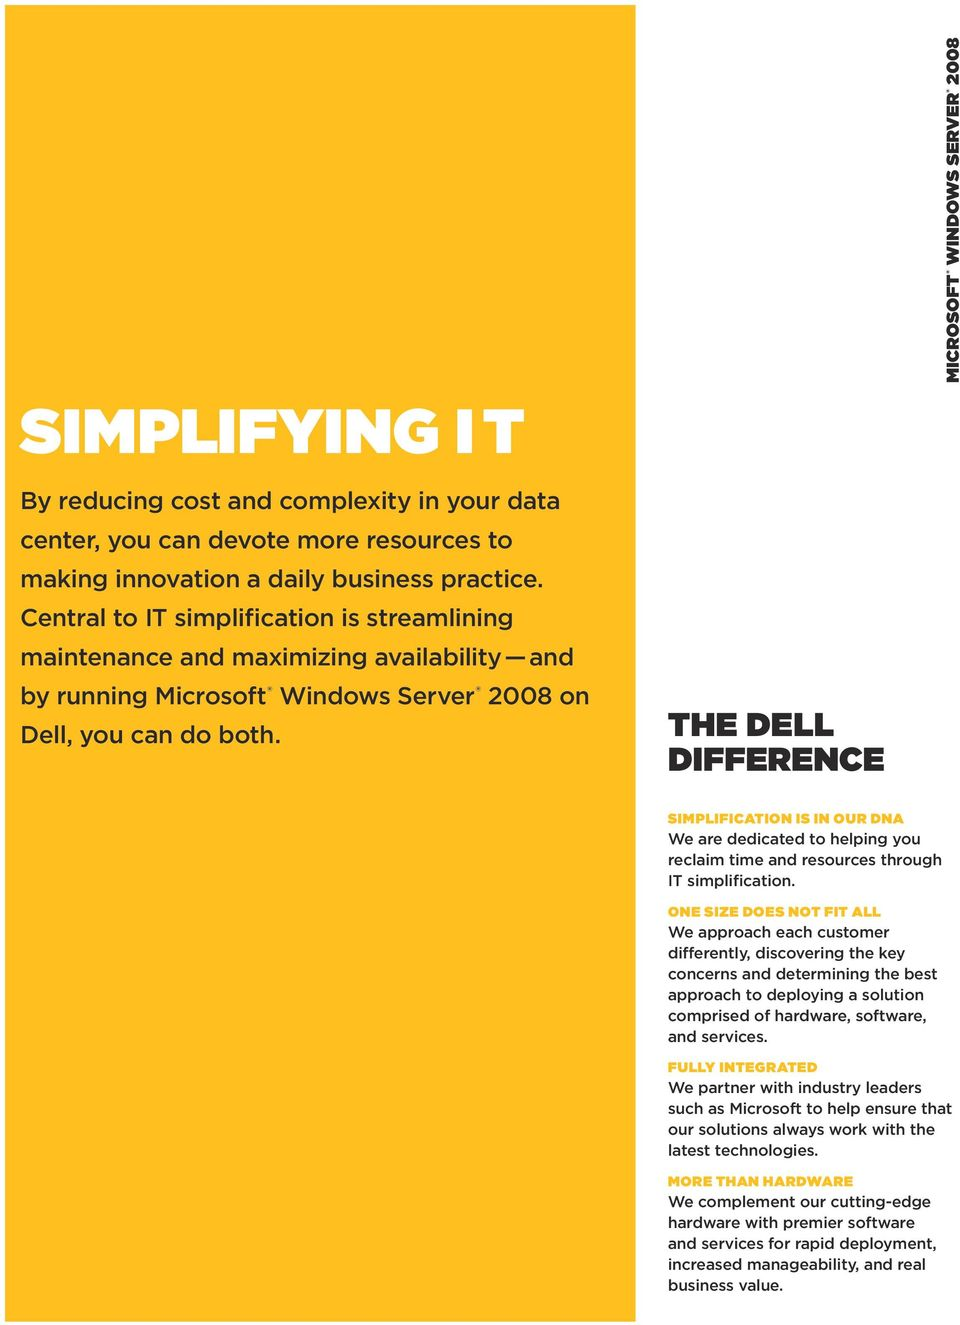 the dell difference Simplification is in our DNA We are dedicated to helping you reclaim time and resources through IT simplification.